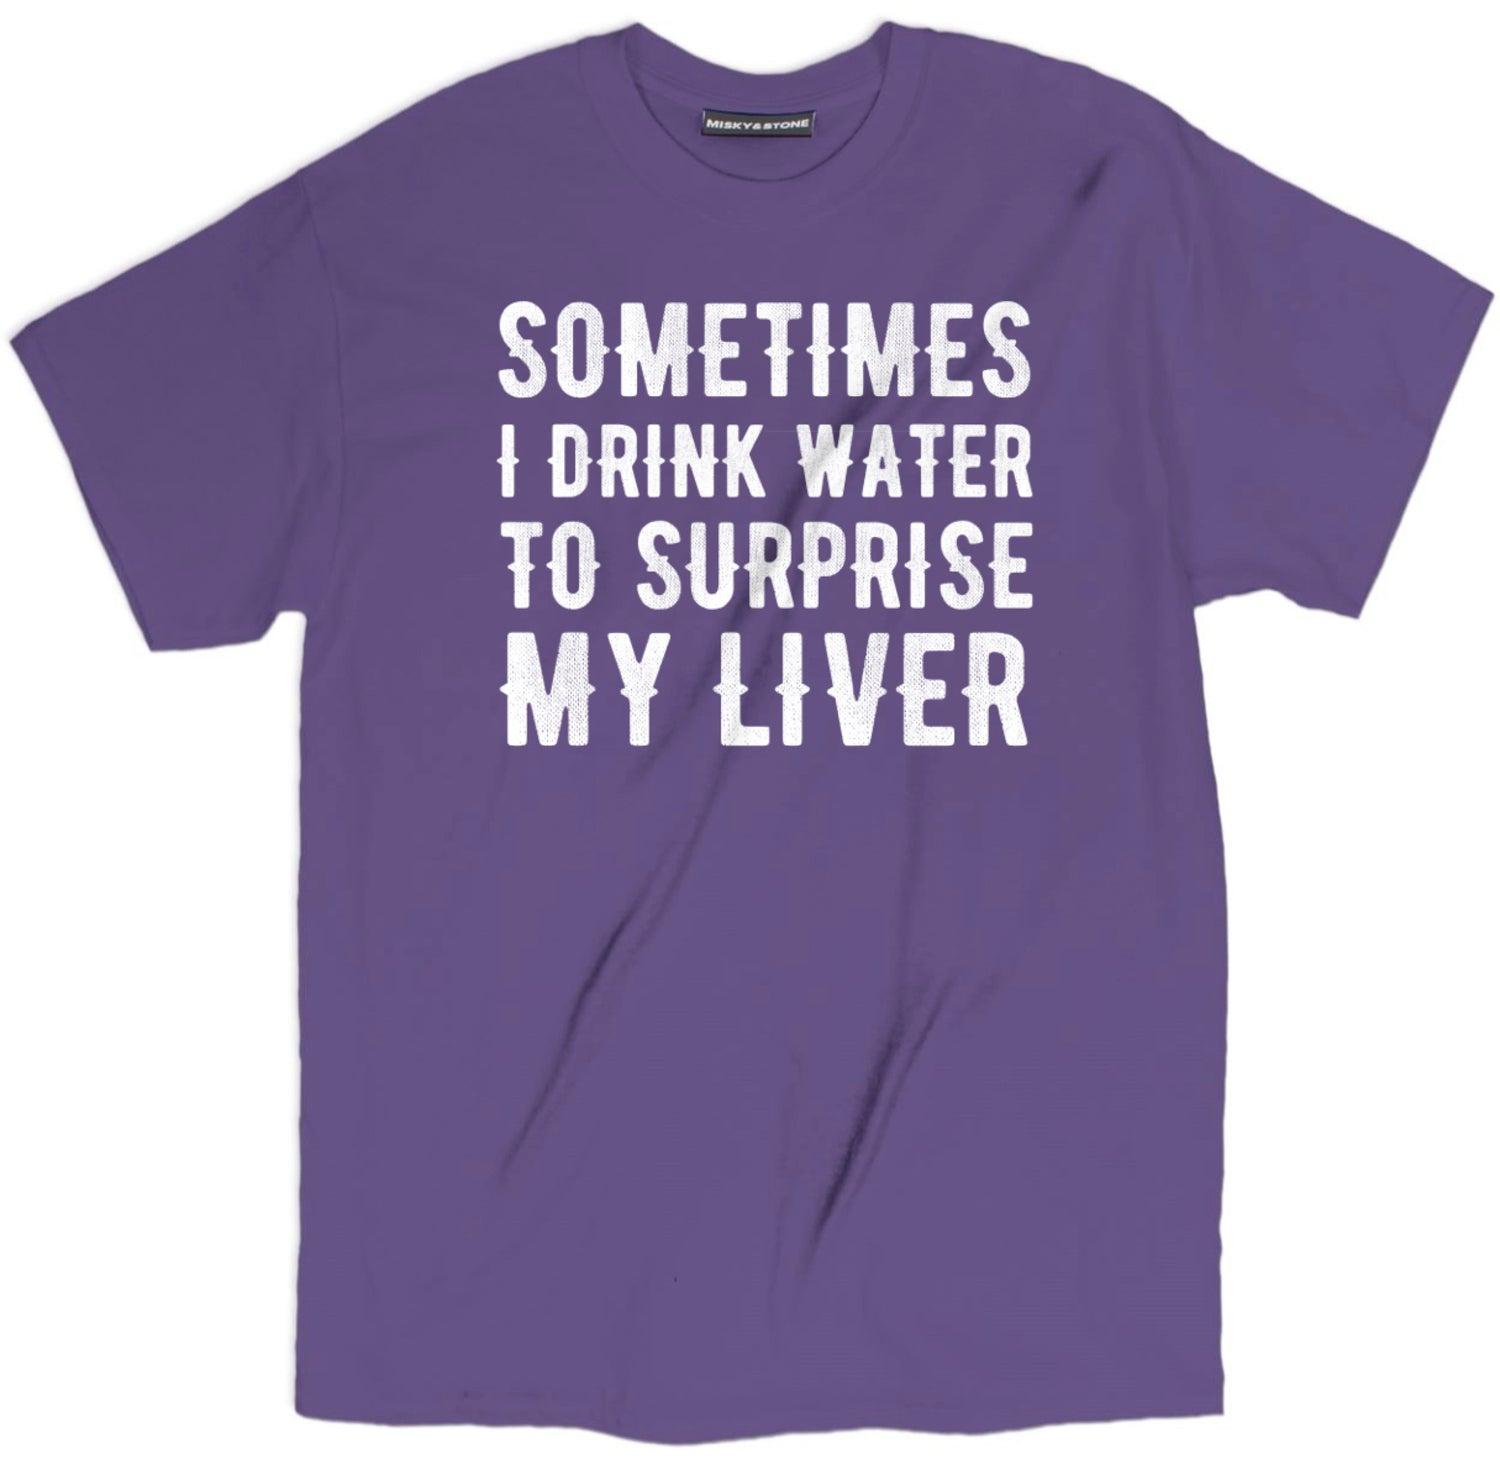 sometimes i drink water to surprise my liver t shirt, sarcastic t shirts, sarcastic shirts, sarcastic tee shirts, sarcastic tees, sarcastic t shirt sayings, sarcastic t shirts quotes, funny sarcastic t shirts,